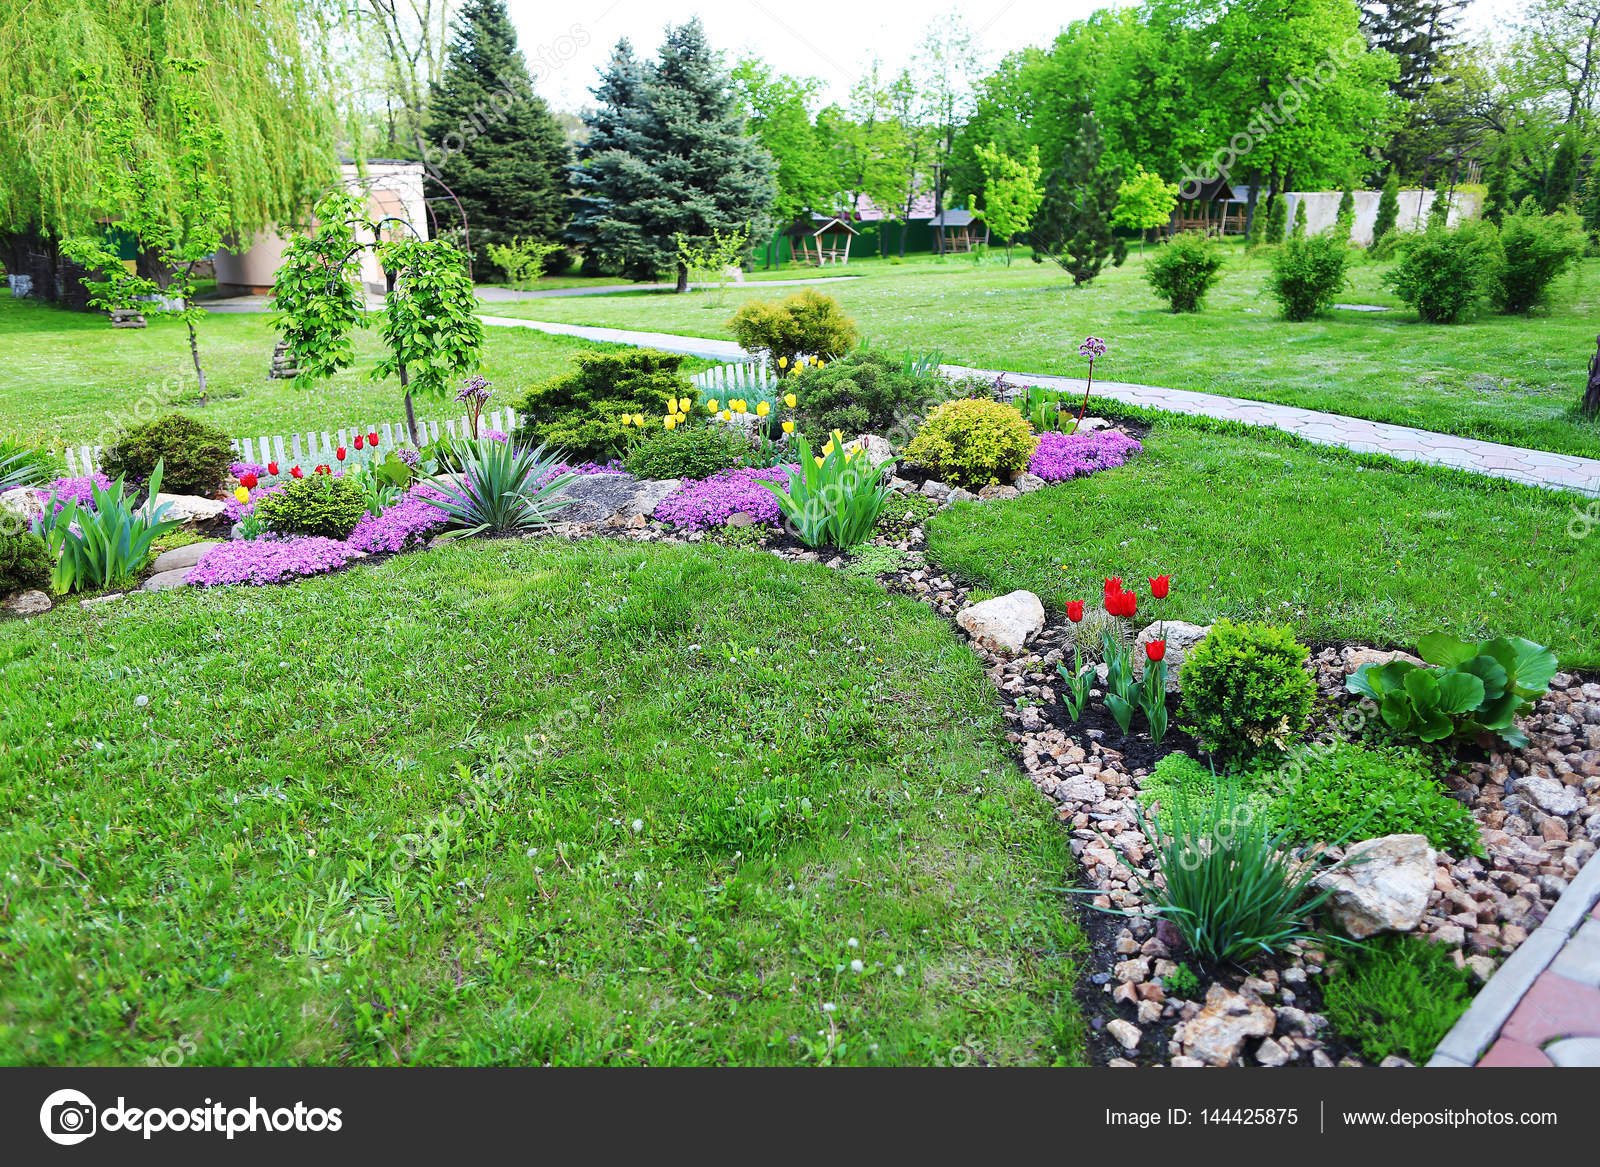 Landscaped area with green spaces, plants, flowers and trees